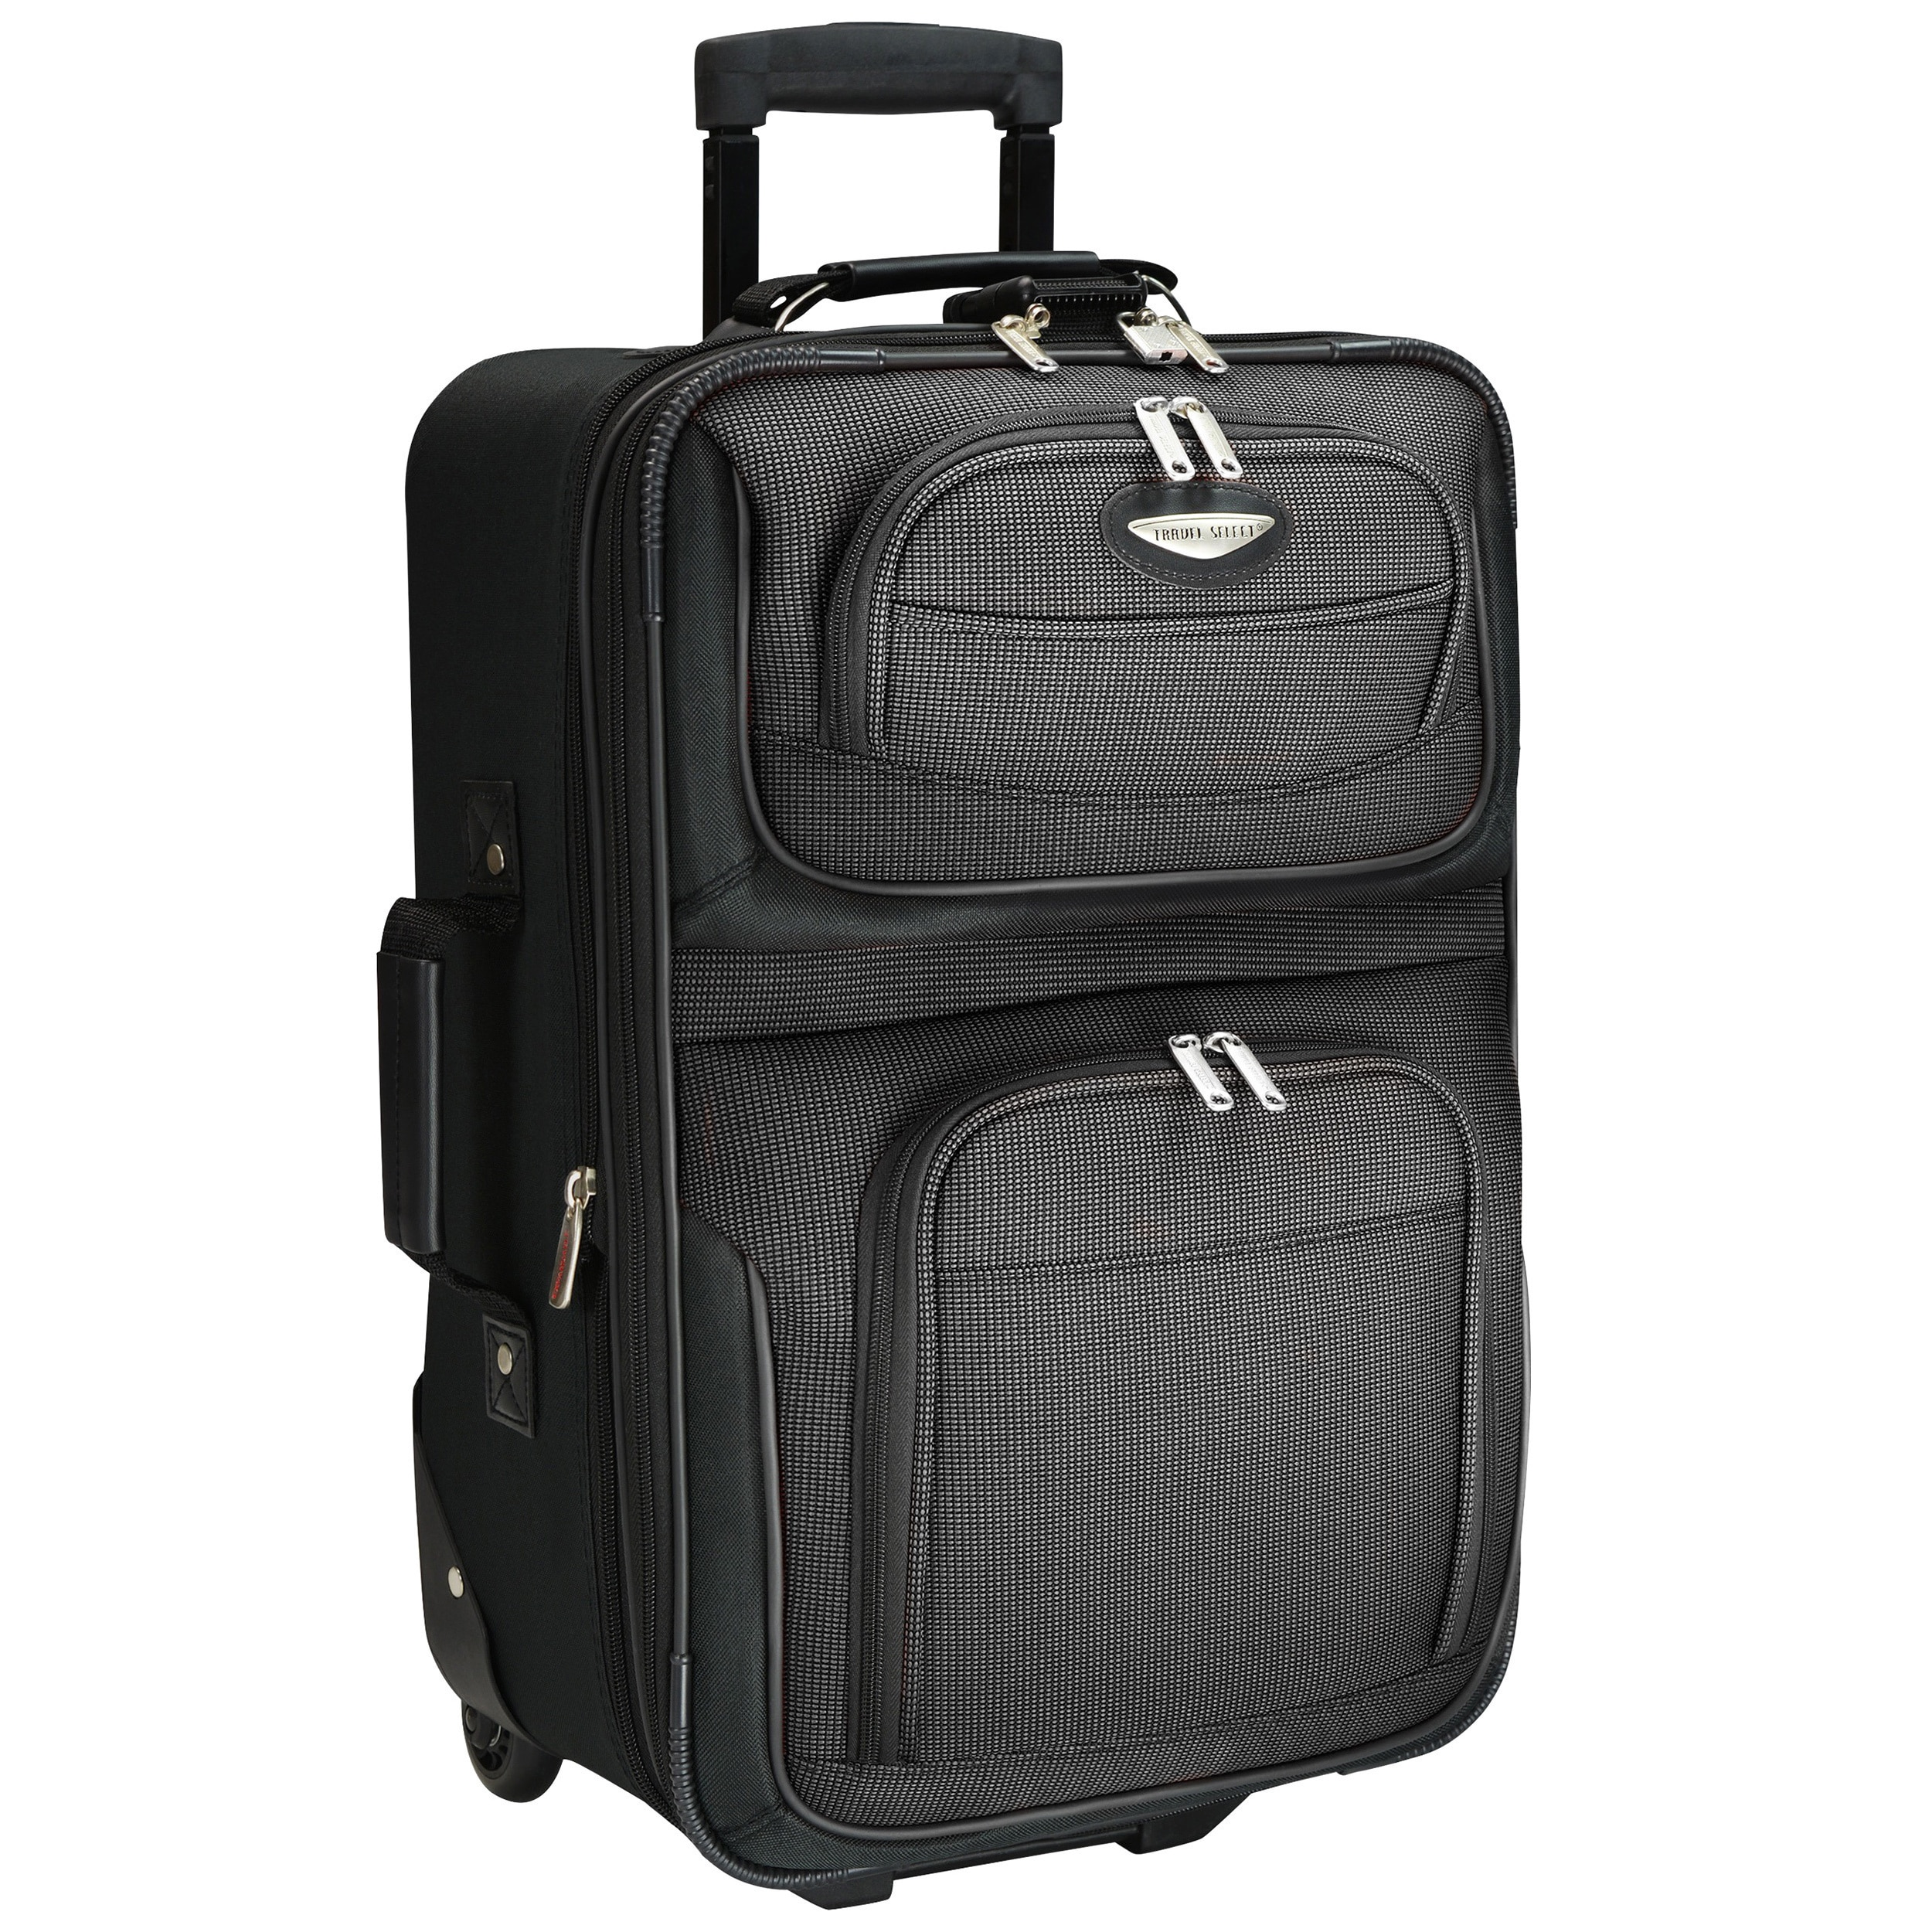 a840f4c2b8a7 Shop Travel Select by Traveler s Choice Amsterdam 21-inch Lightweight Carry  On Upright Suitcase - On Sale - Free Shipping Today - Overstock - 2969442